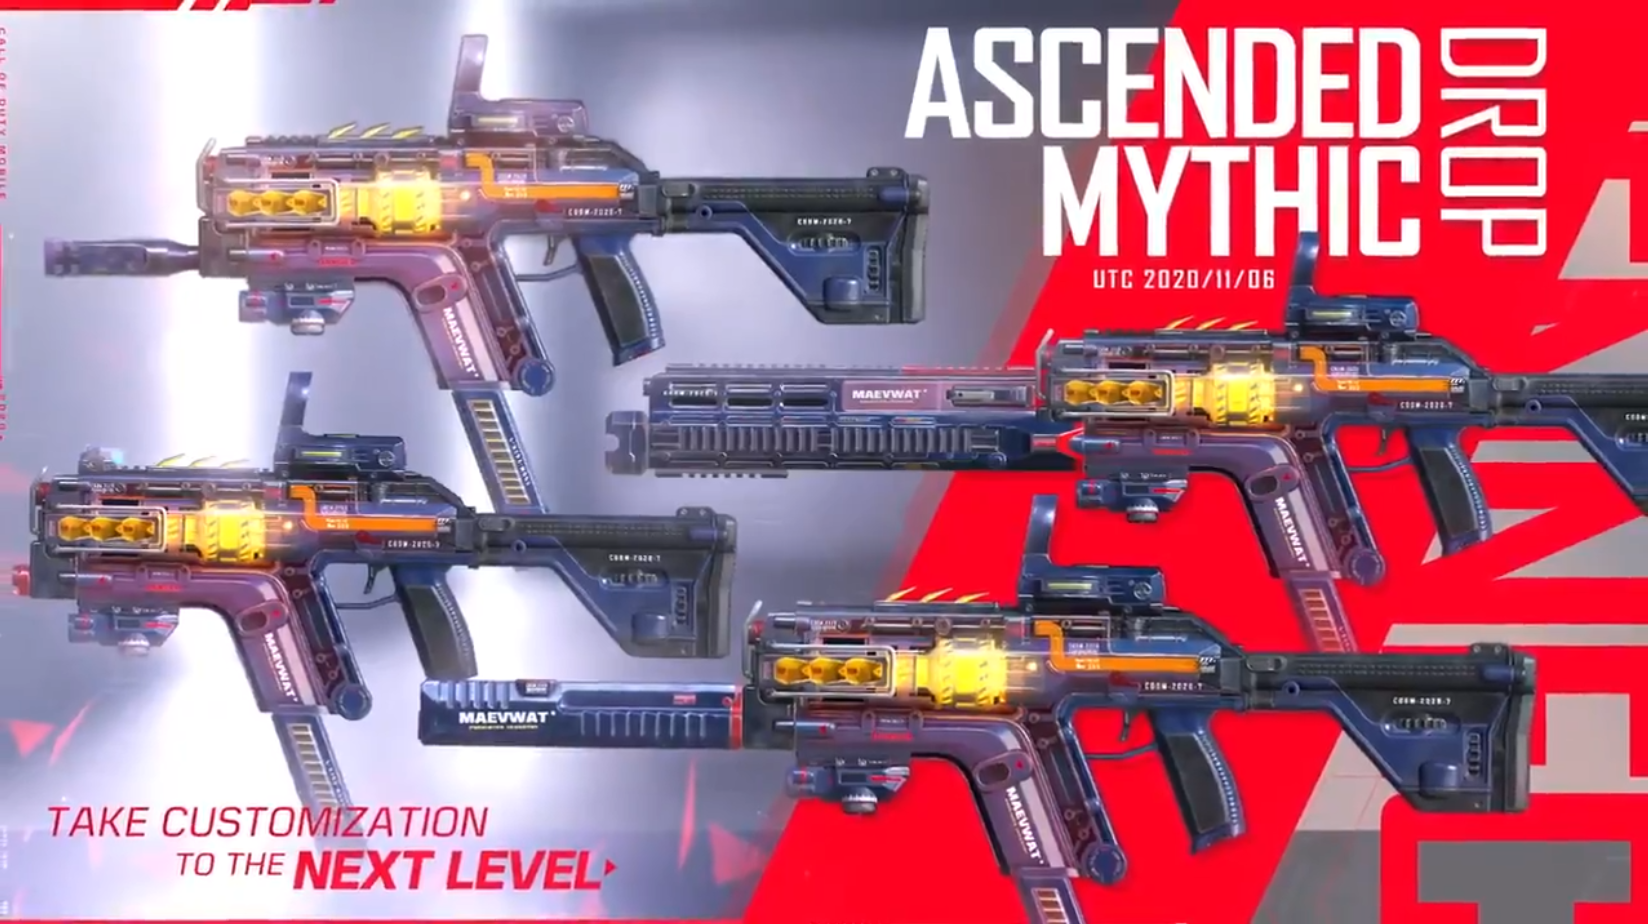 Call of Duty Mobile: The Very First Mythical Weapon in Store This Week